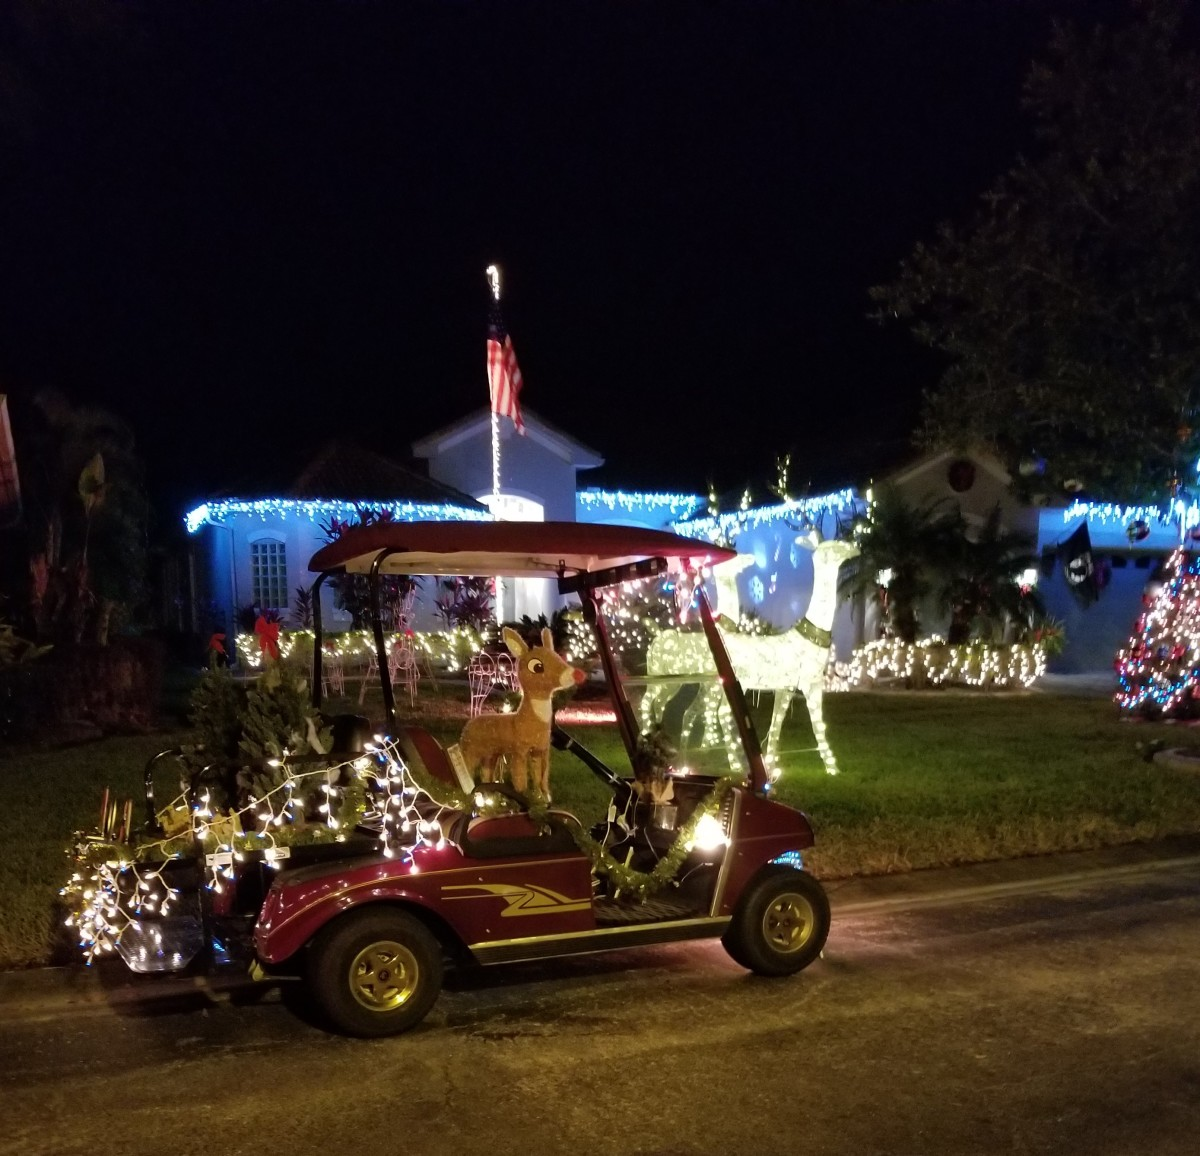 Once decorated, your golf cart makes a fine lawn ornament for your seasonal display. Take it for a ride too or join a parade.